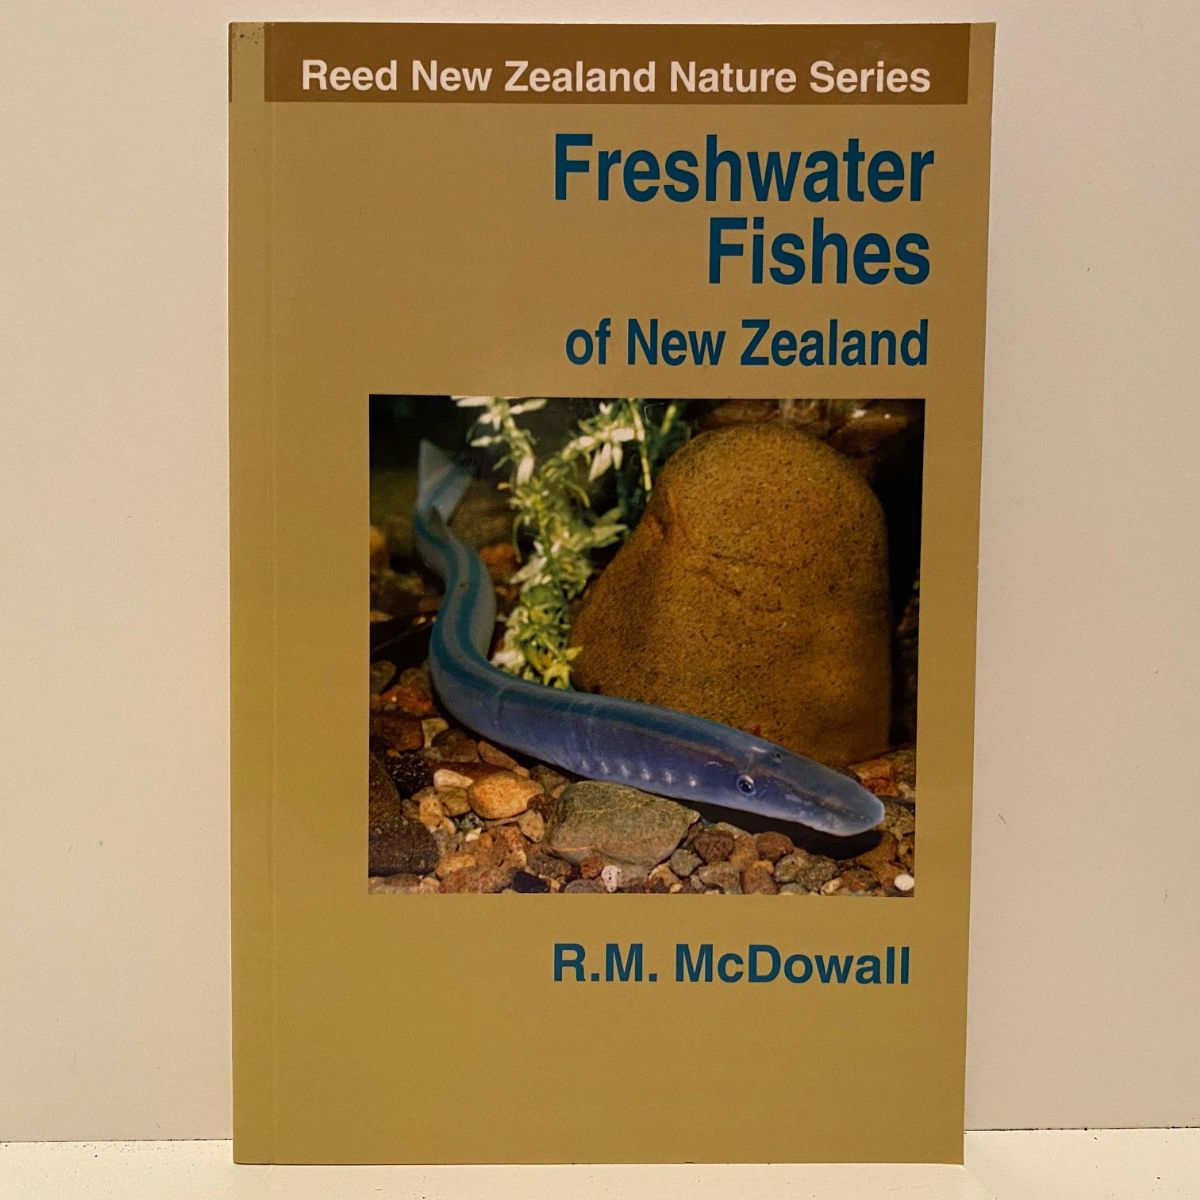 Freshwater Fishes of New Zealand